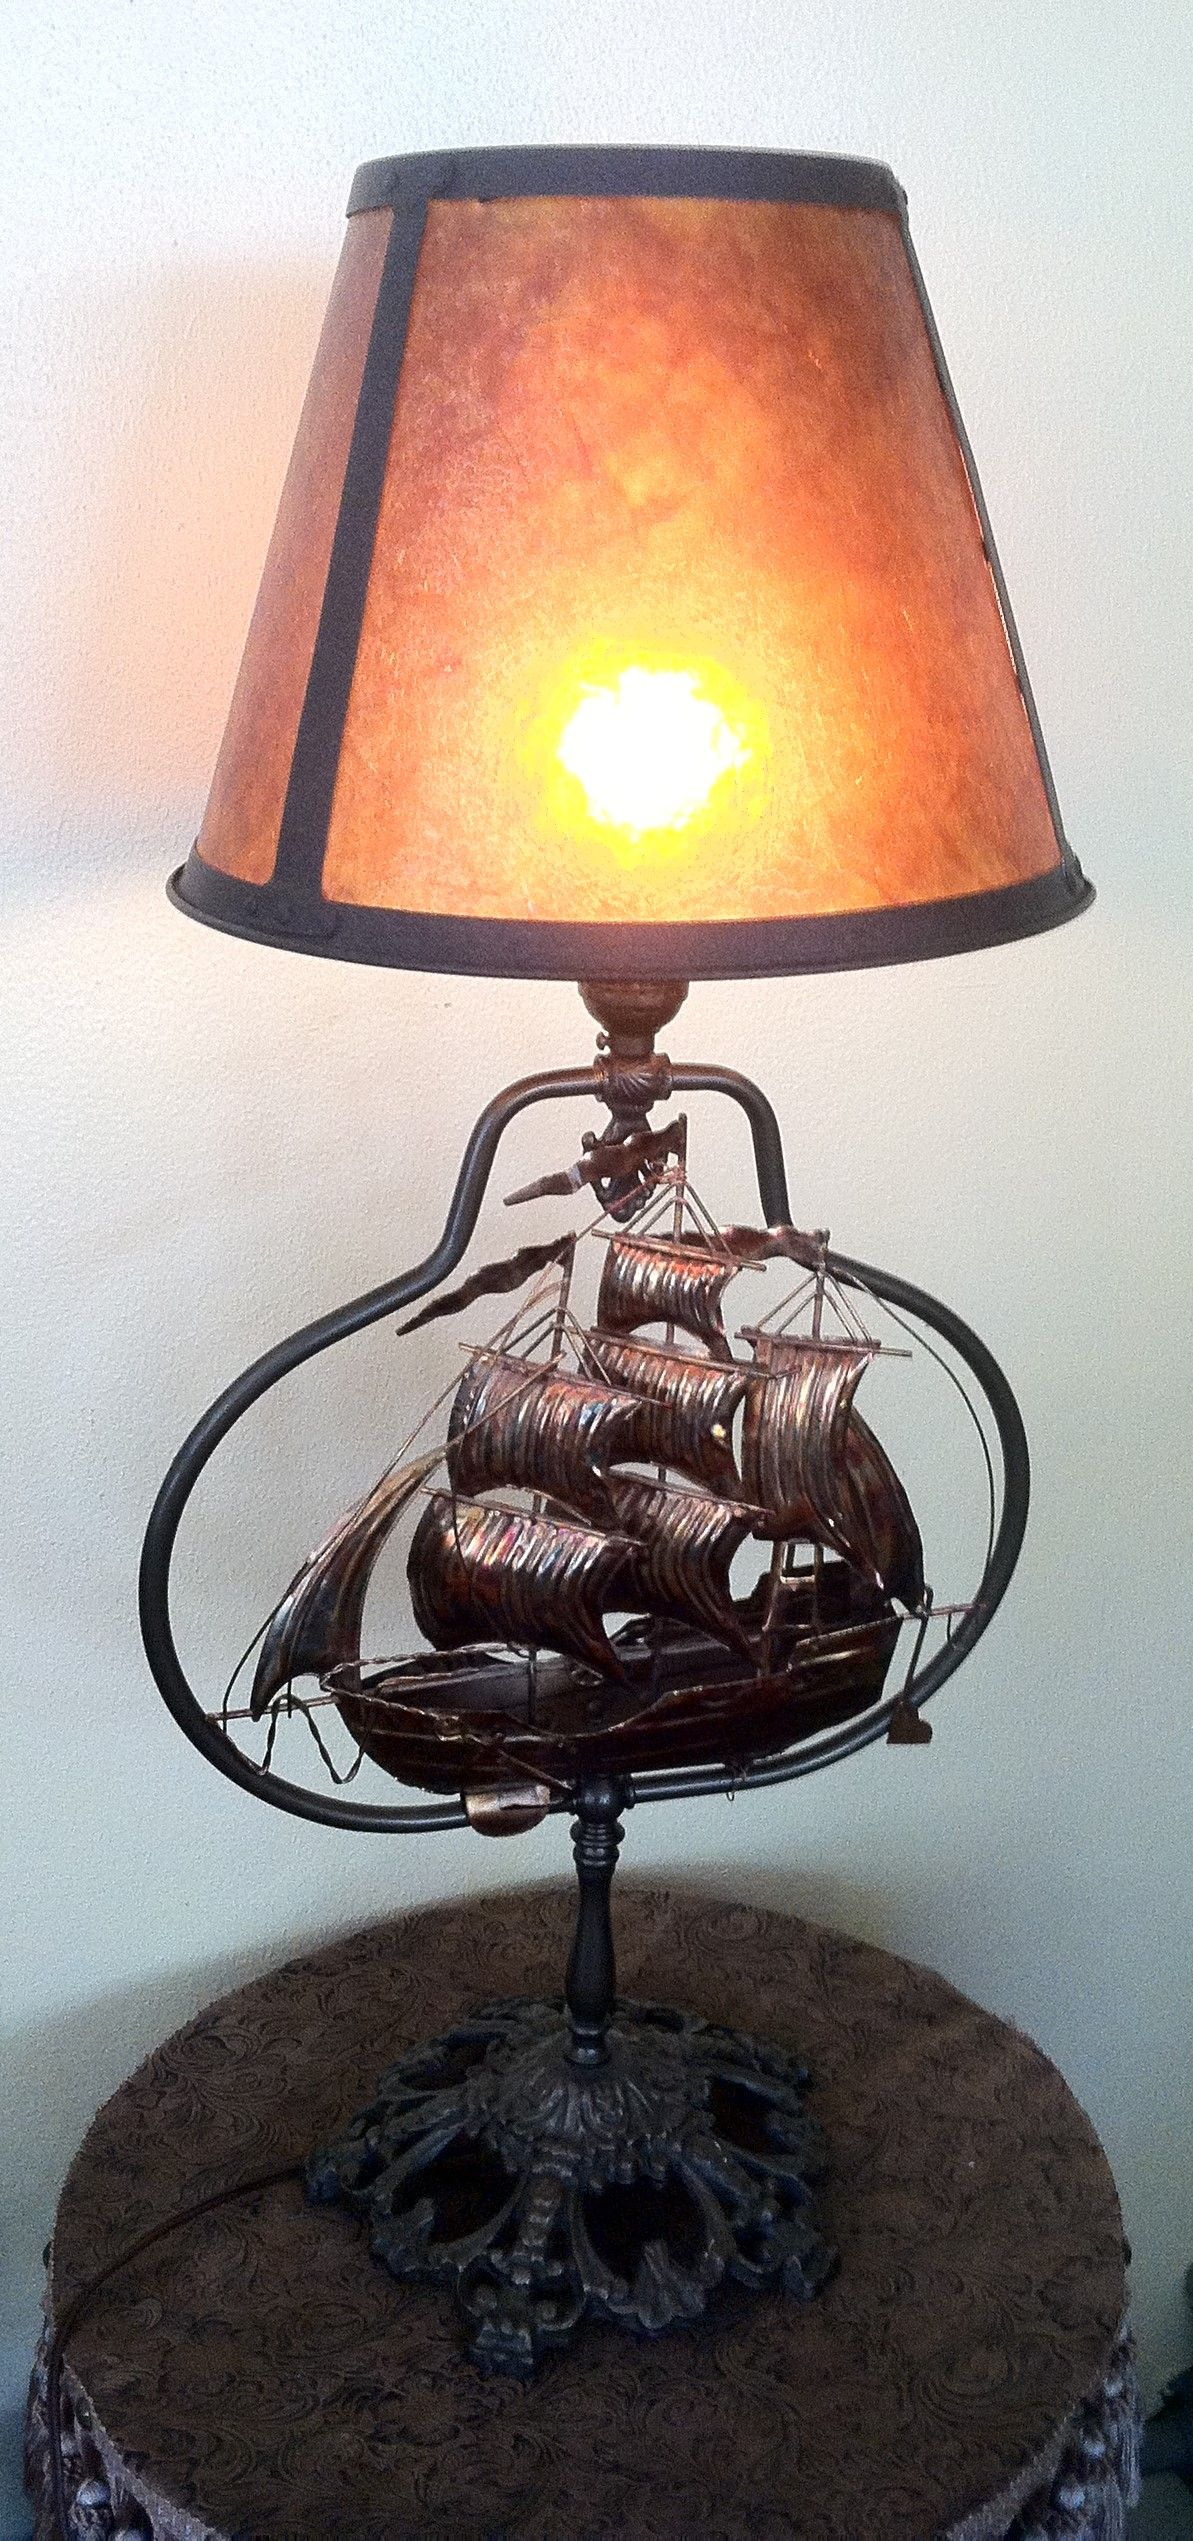 Astounding Handcrafted Sailing Ship Table Lamp This Lamp Features A Interior Design Ideas Clesiryabchikinfo